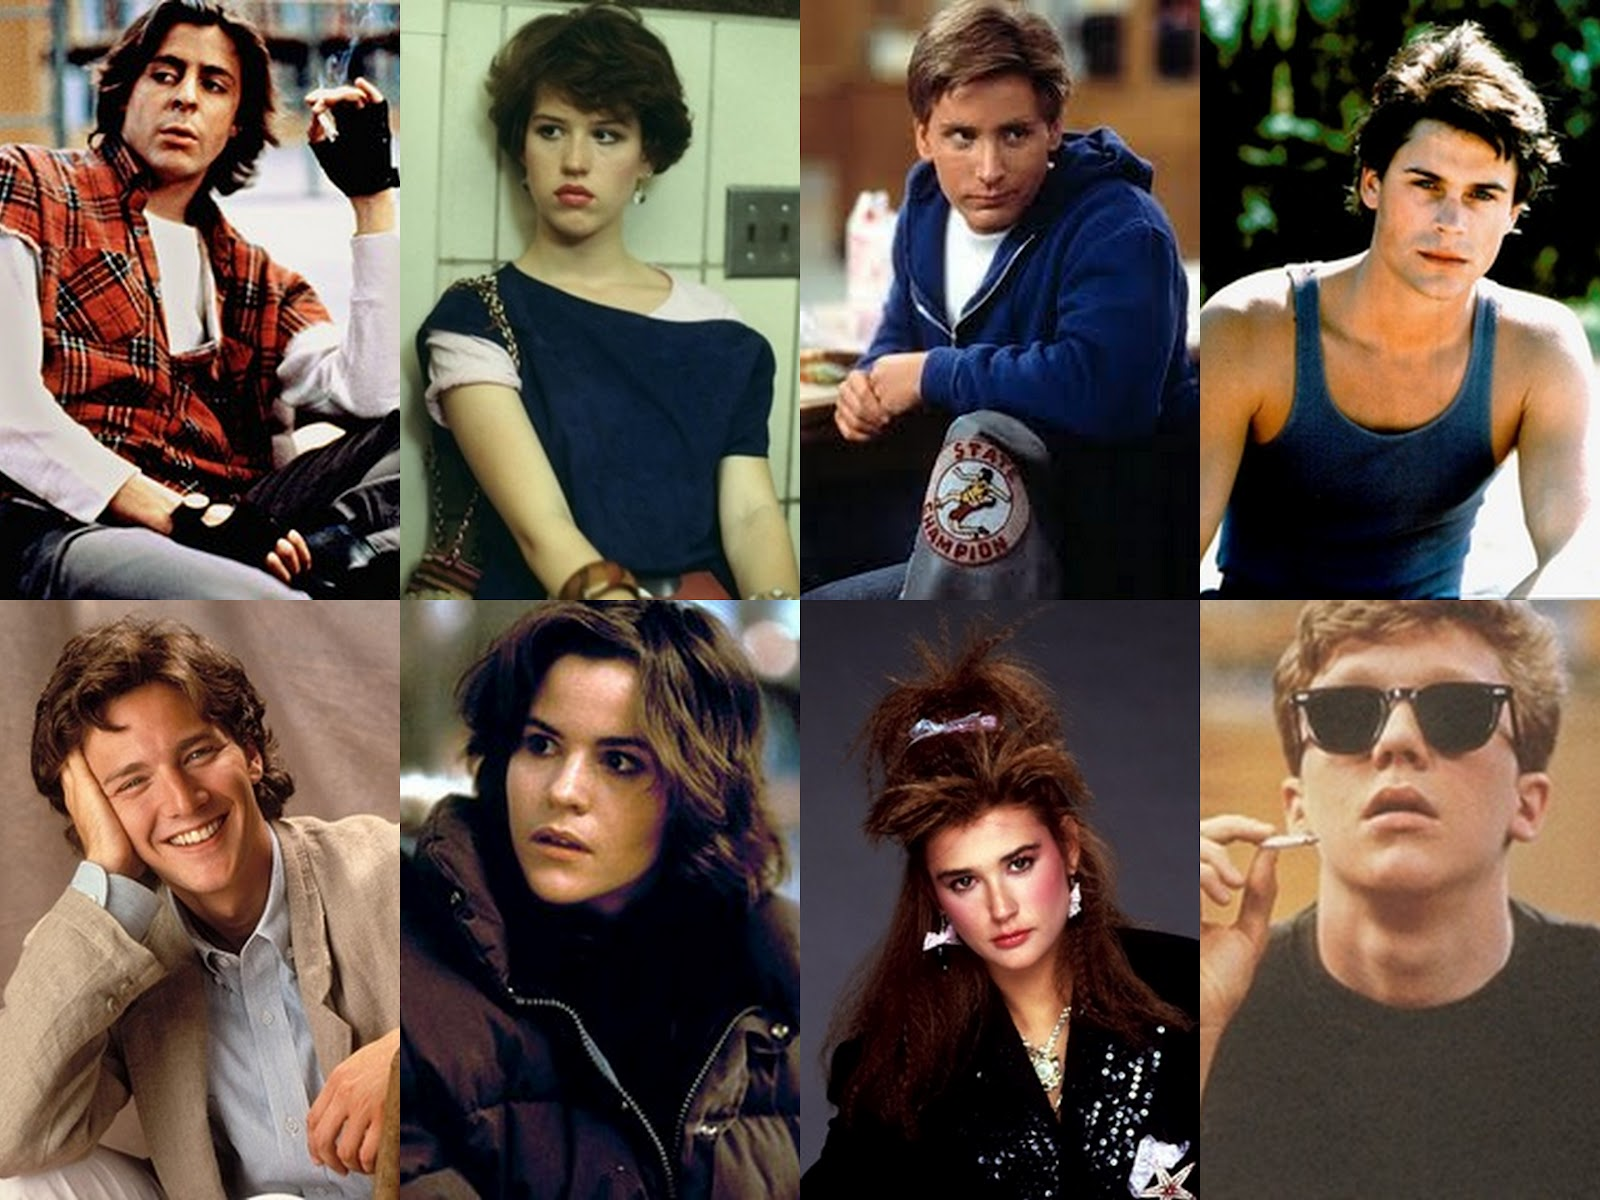 Brat Pack facts